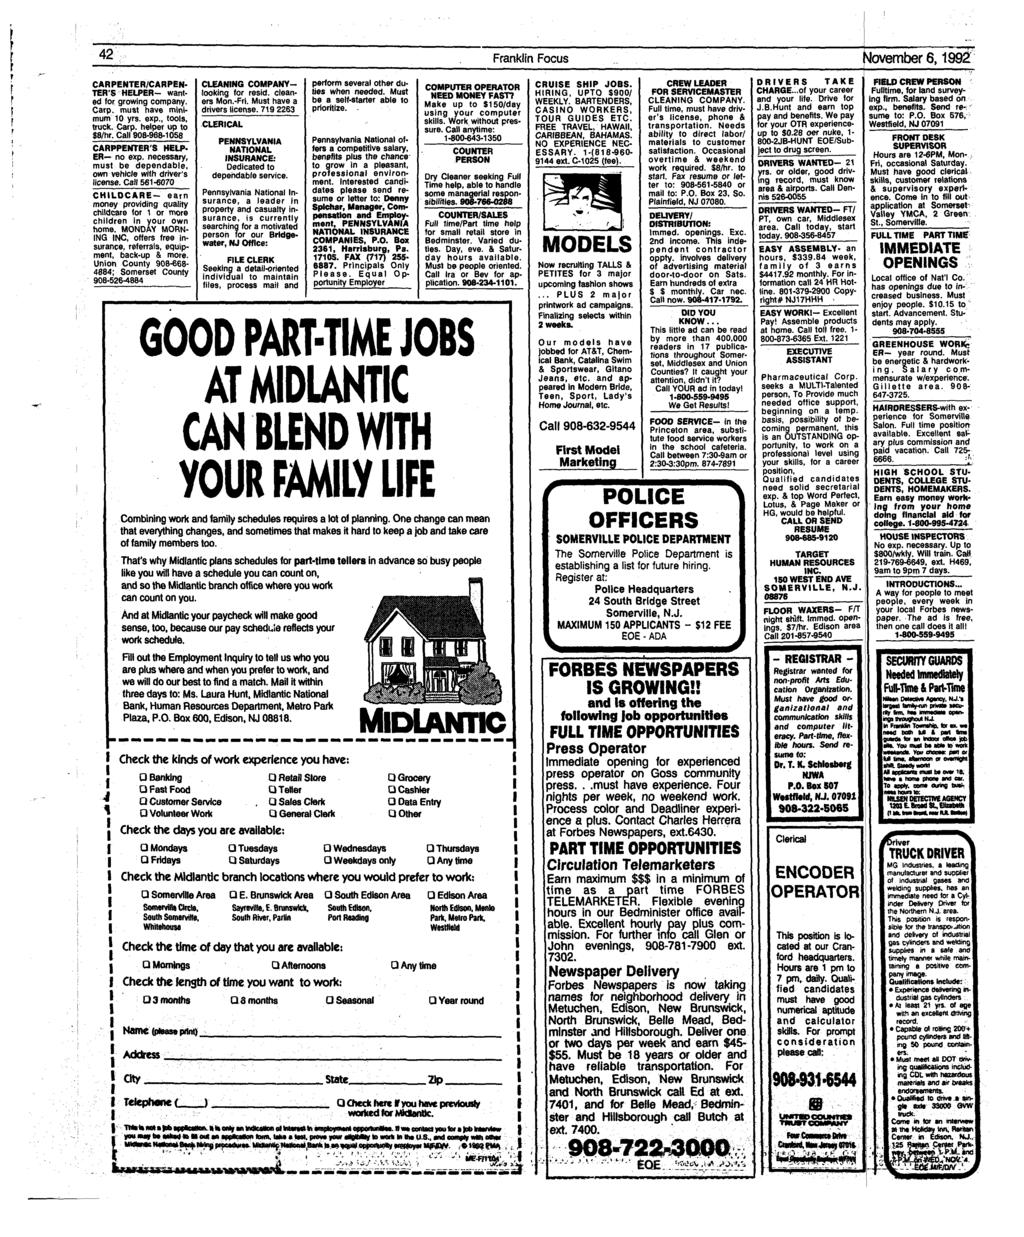 42 Franklin Focus November 6,1992 CARPENTER/CARPEN- TER'S HELPER- wanted for growing company. Carp, must have minimum 10 yrs. exp., tools, truck. Carp, helper up to $8/hr.